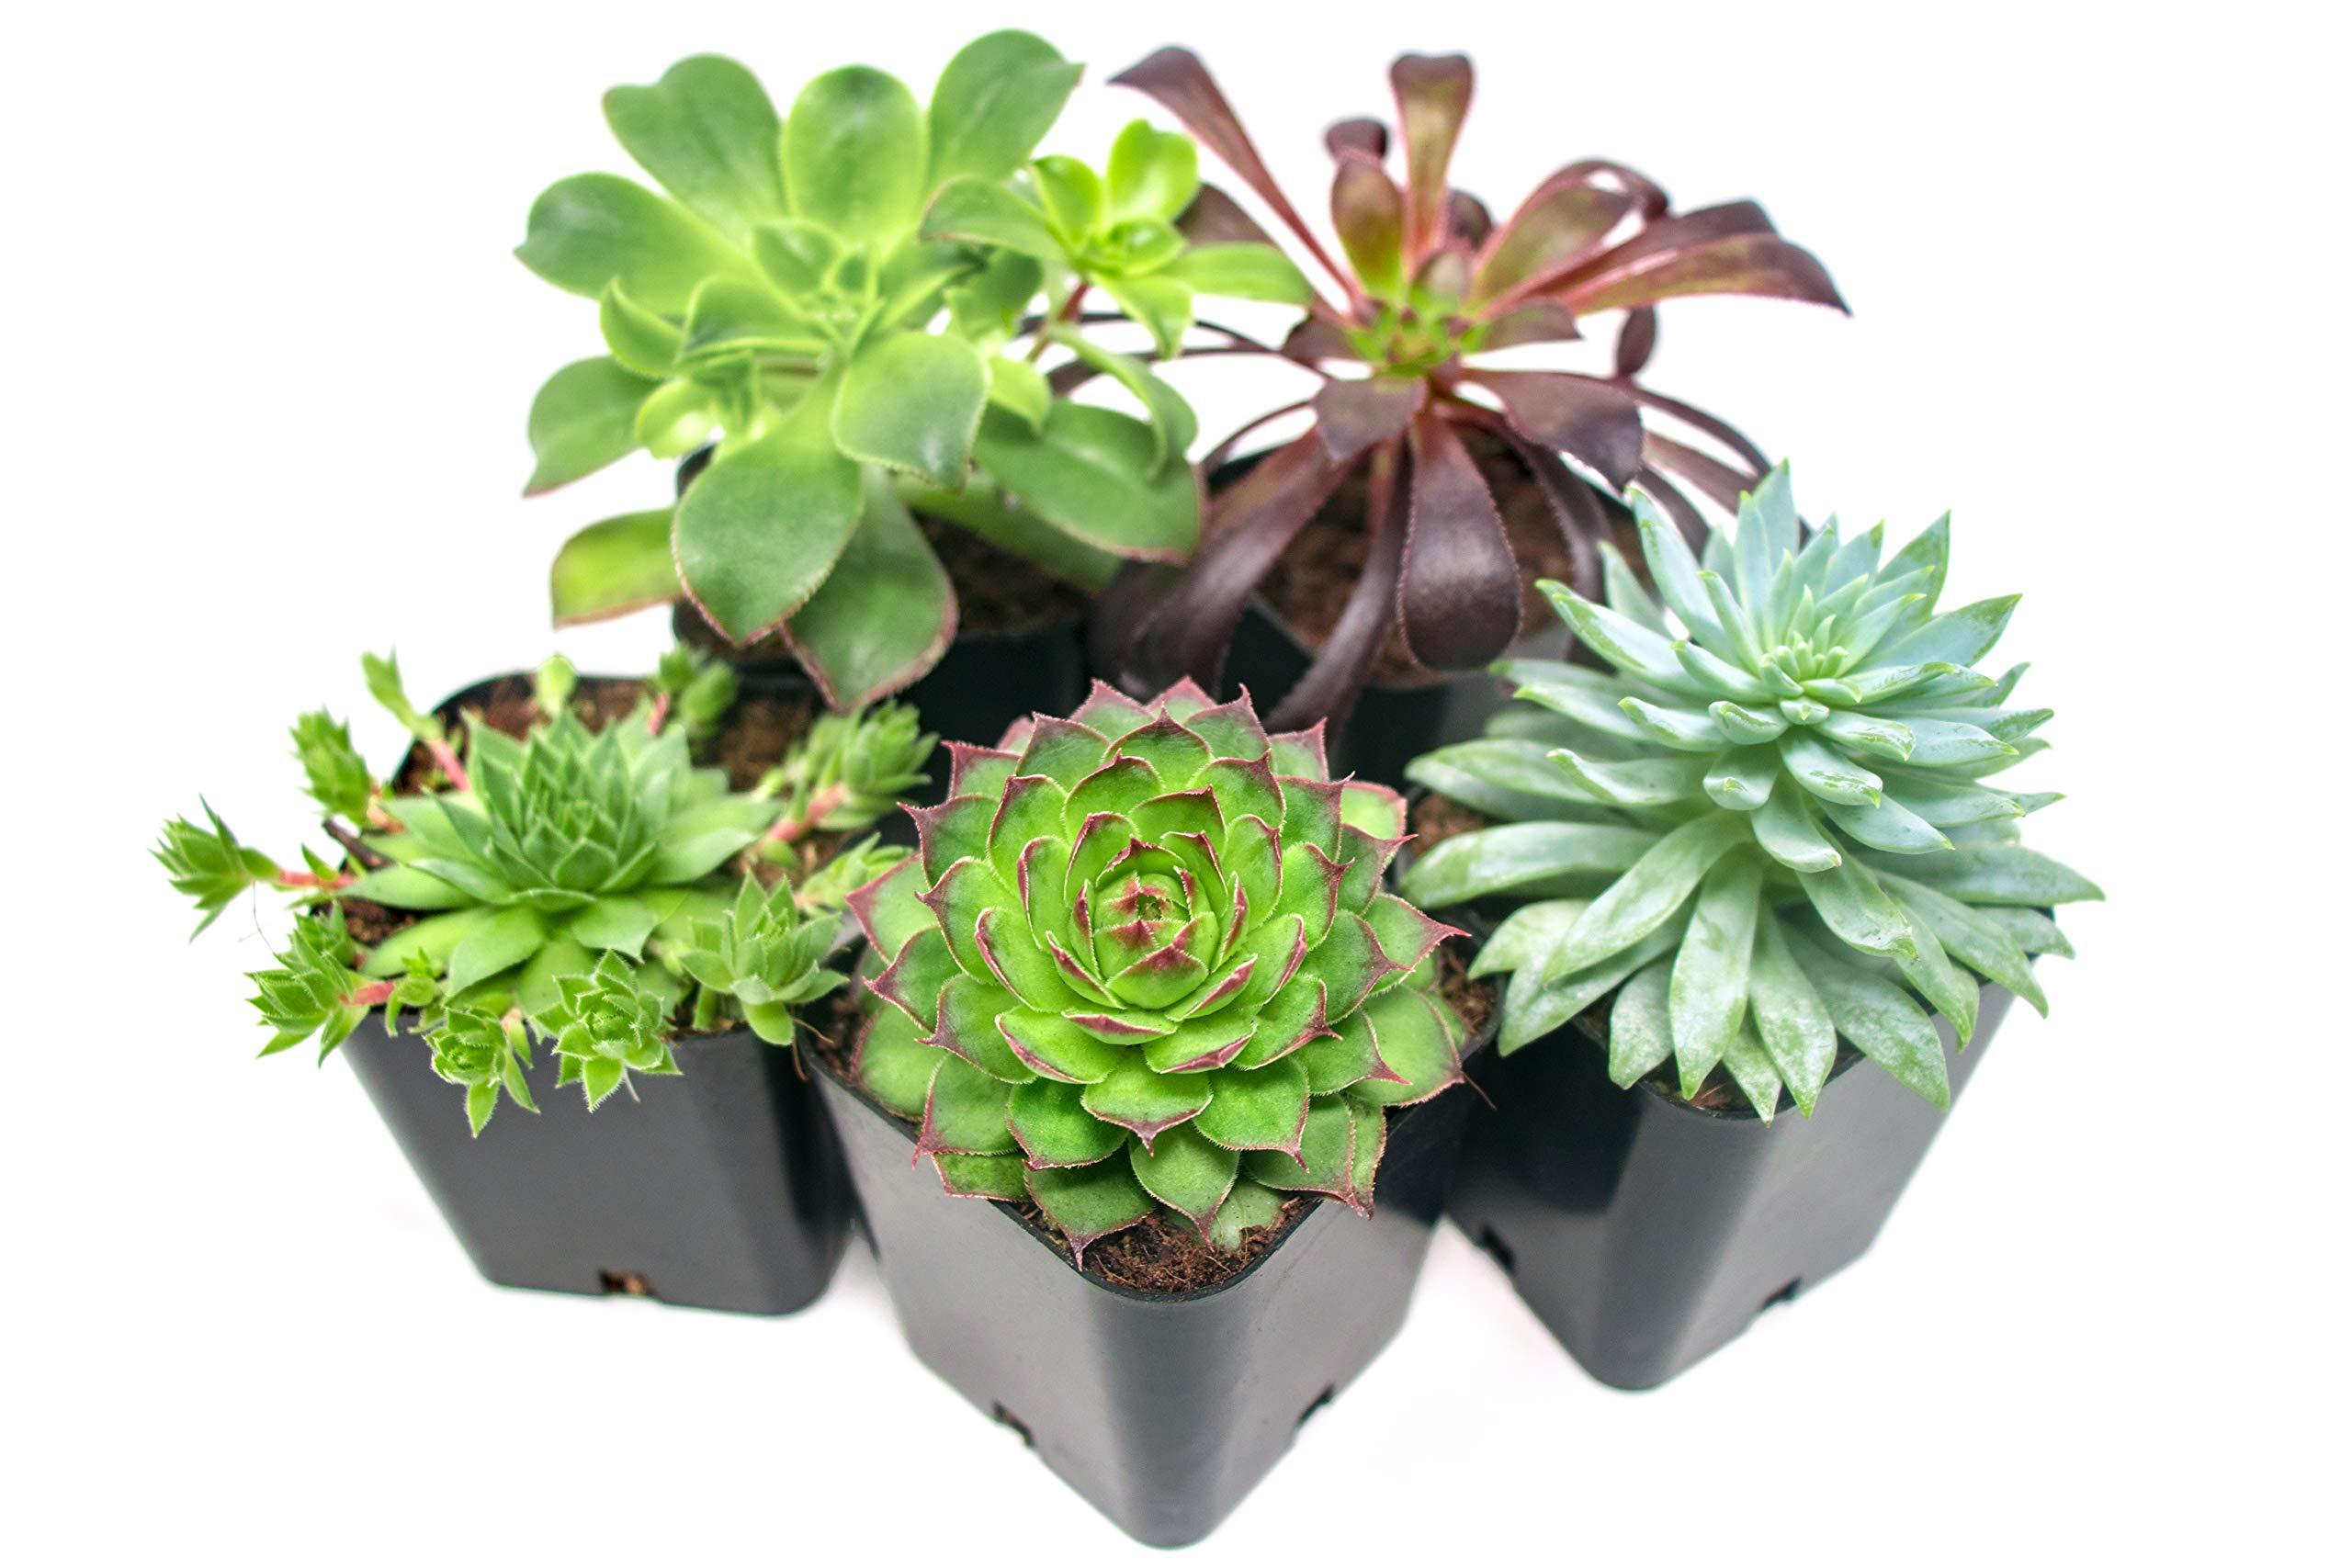 Succulent Plants (5 Pack), Fully Rooted in Planter Pots with Soil - Real Live Potted Succulents / Unique Indoor Cactus… 1 HAND SELECTED: Every pack of succulents we send is hand-picked. You will receive a unique collection of species that are FULLY ROOTED IN 2 INCH POTS, which will be similar to the product photos (see photo 2 for scale). Note that we rotate our nursery stock often, so the exact species we send changes every week. THE EASIEST HOUSE PLANTS: More appealing than artificial plastic or fake faux plants, and care is a cinch. If you think you can't keep houseplants alive, you're wrong; our succulents don't require fertilizer and can be planted in a decorative pot of your choice within seconds. DIY HOME DECOR: The possibilities are only limited by your imagination; display them in a plant holder, a wall mount, a geometric glass vase, or even in a live wreath. Because of their amazingly low care requirements, they can even make the perfect desk centerpiece for your office.